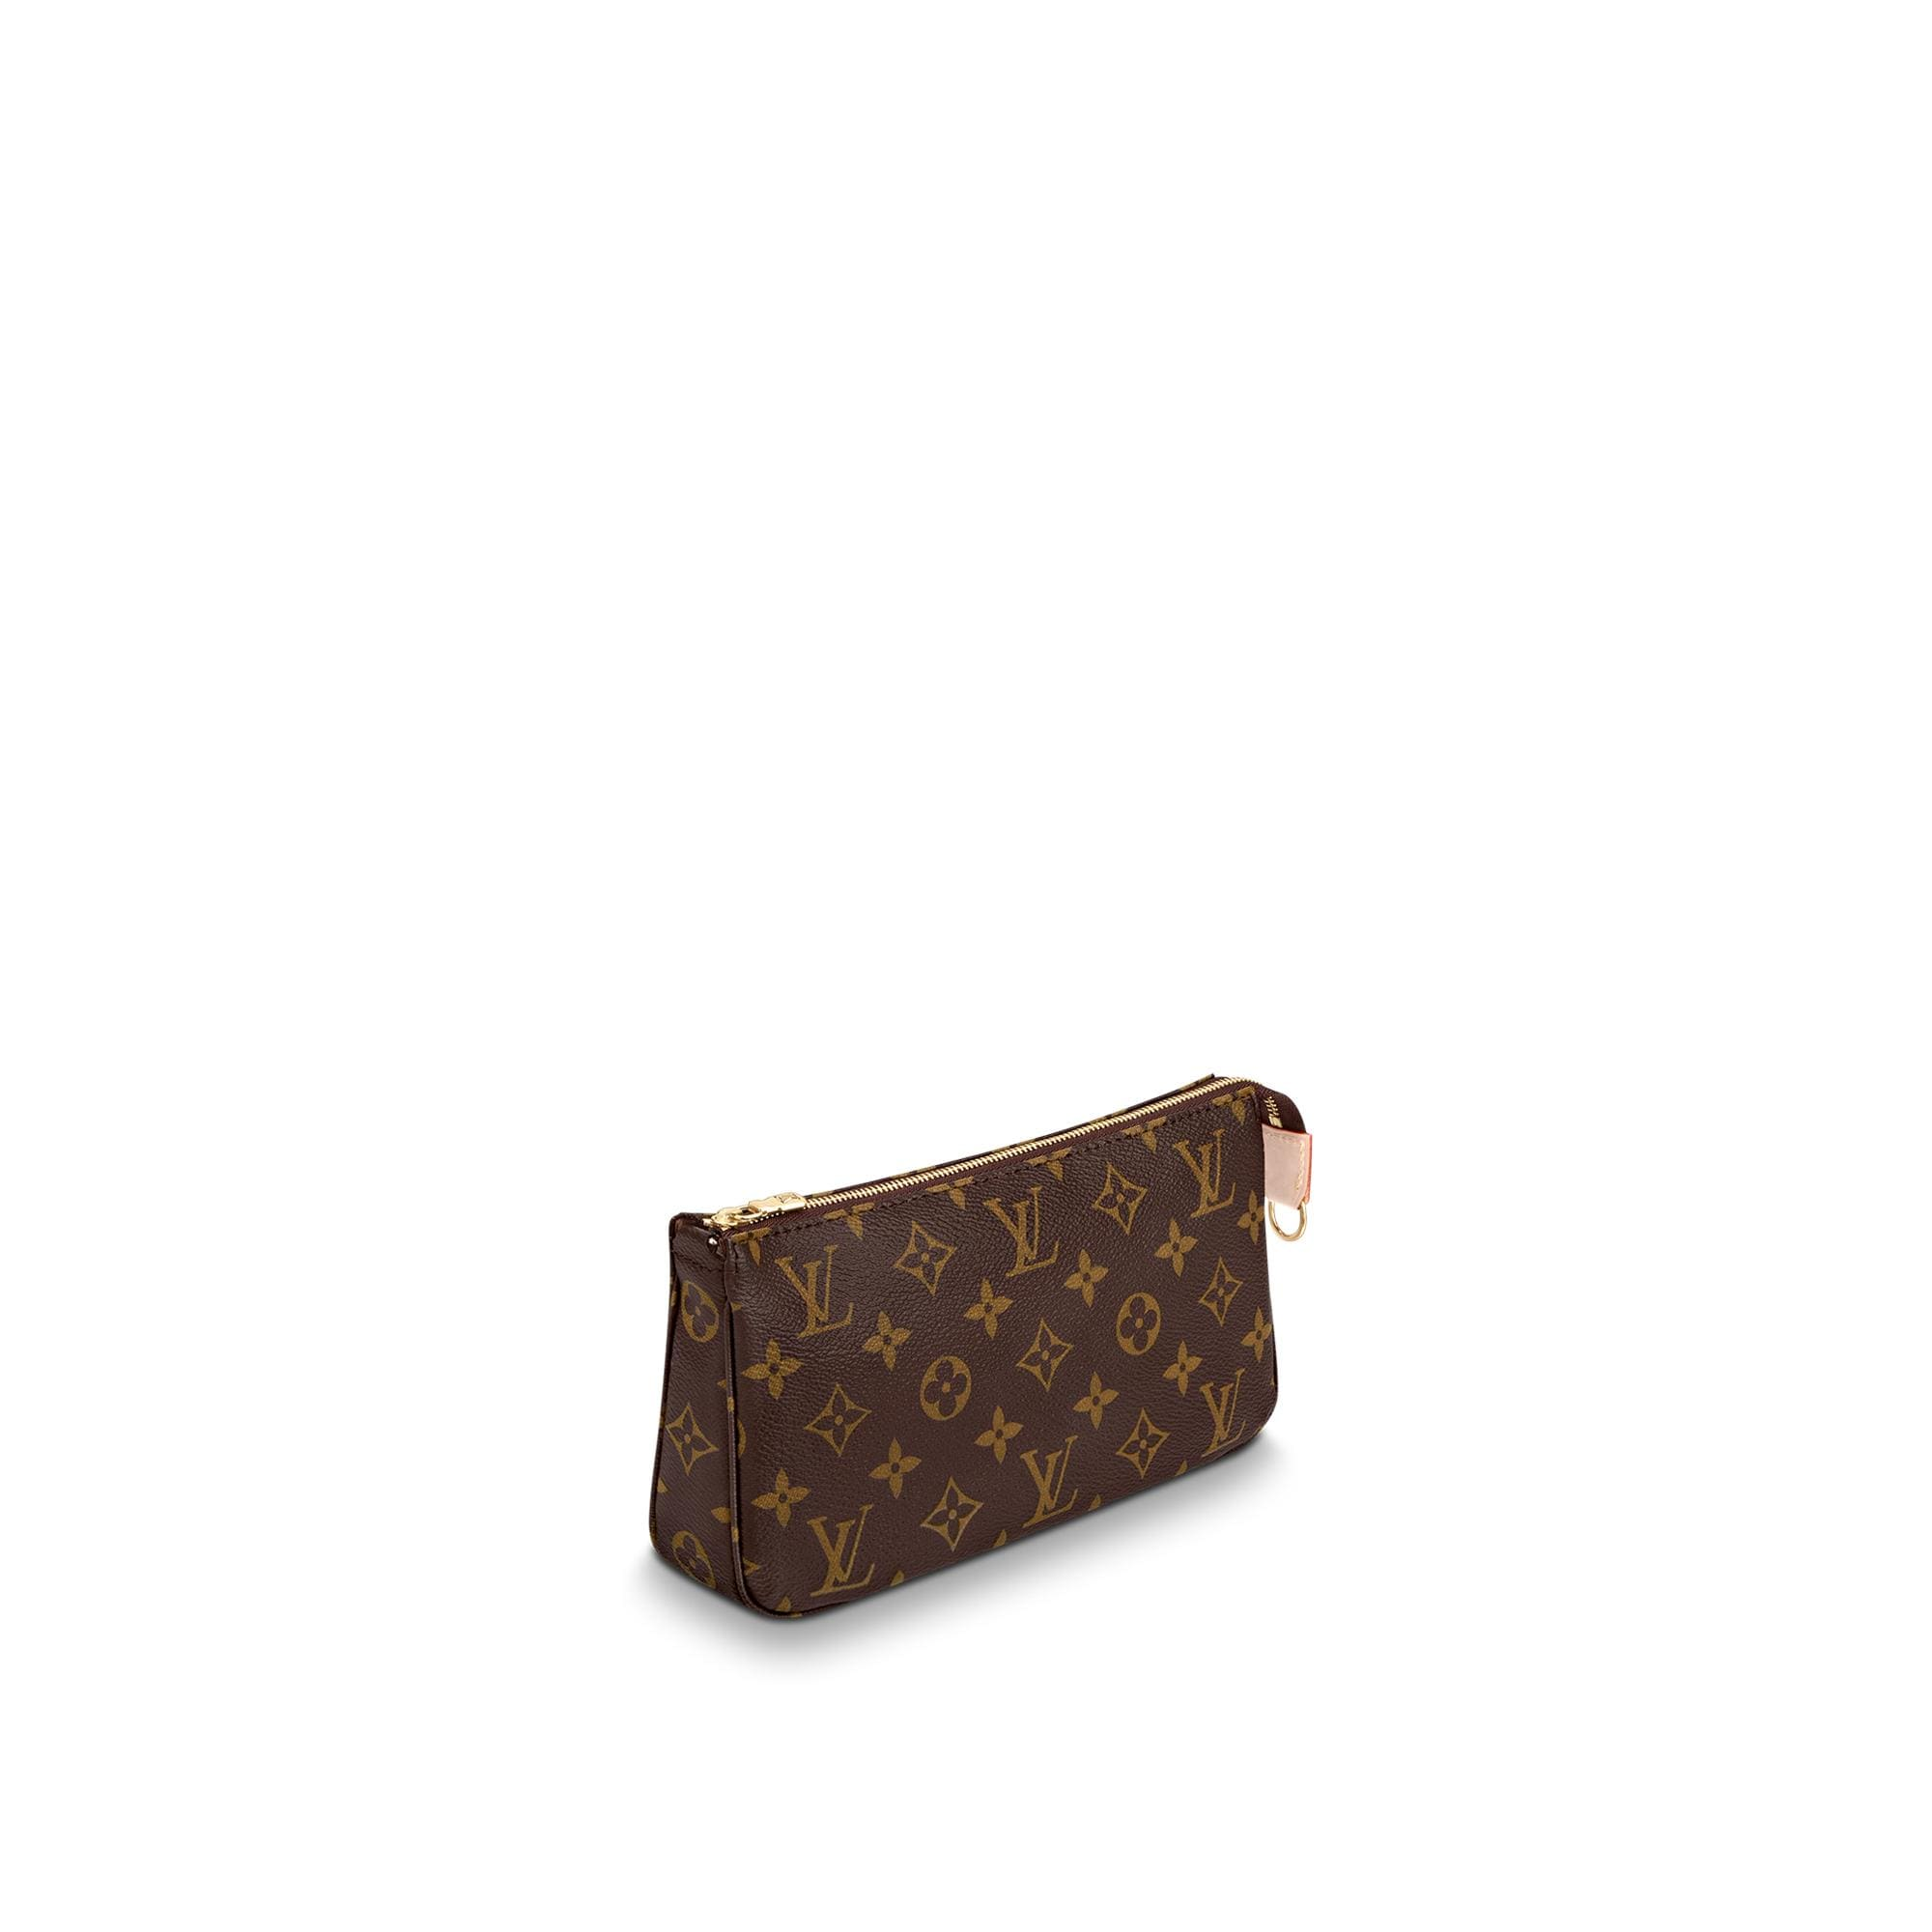 Monogram HANDBAGS Shoulder Bags & Totes Pochette Accessoires